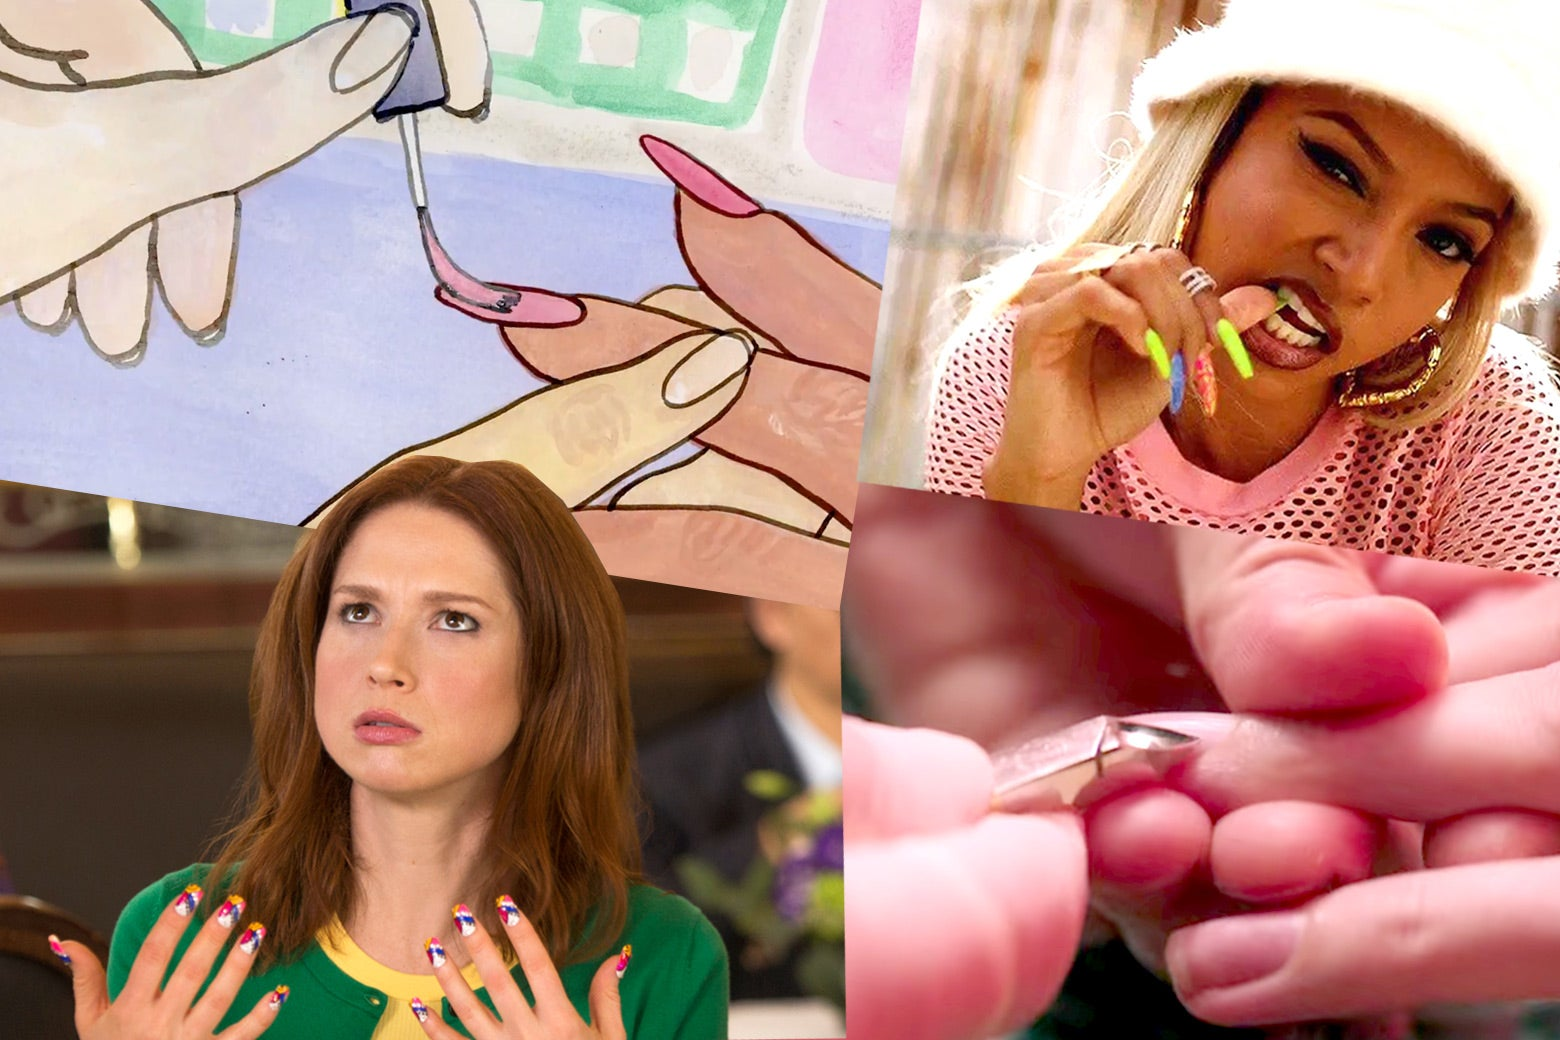 A collage of stills from several movies and TV shows depicting nail salon.